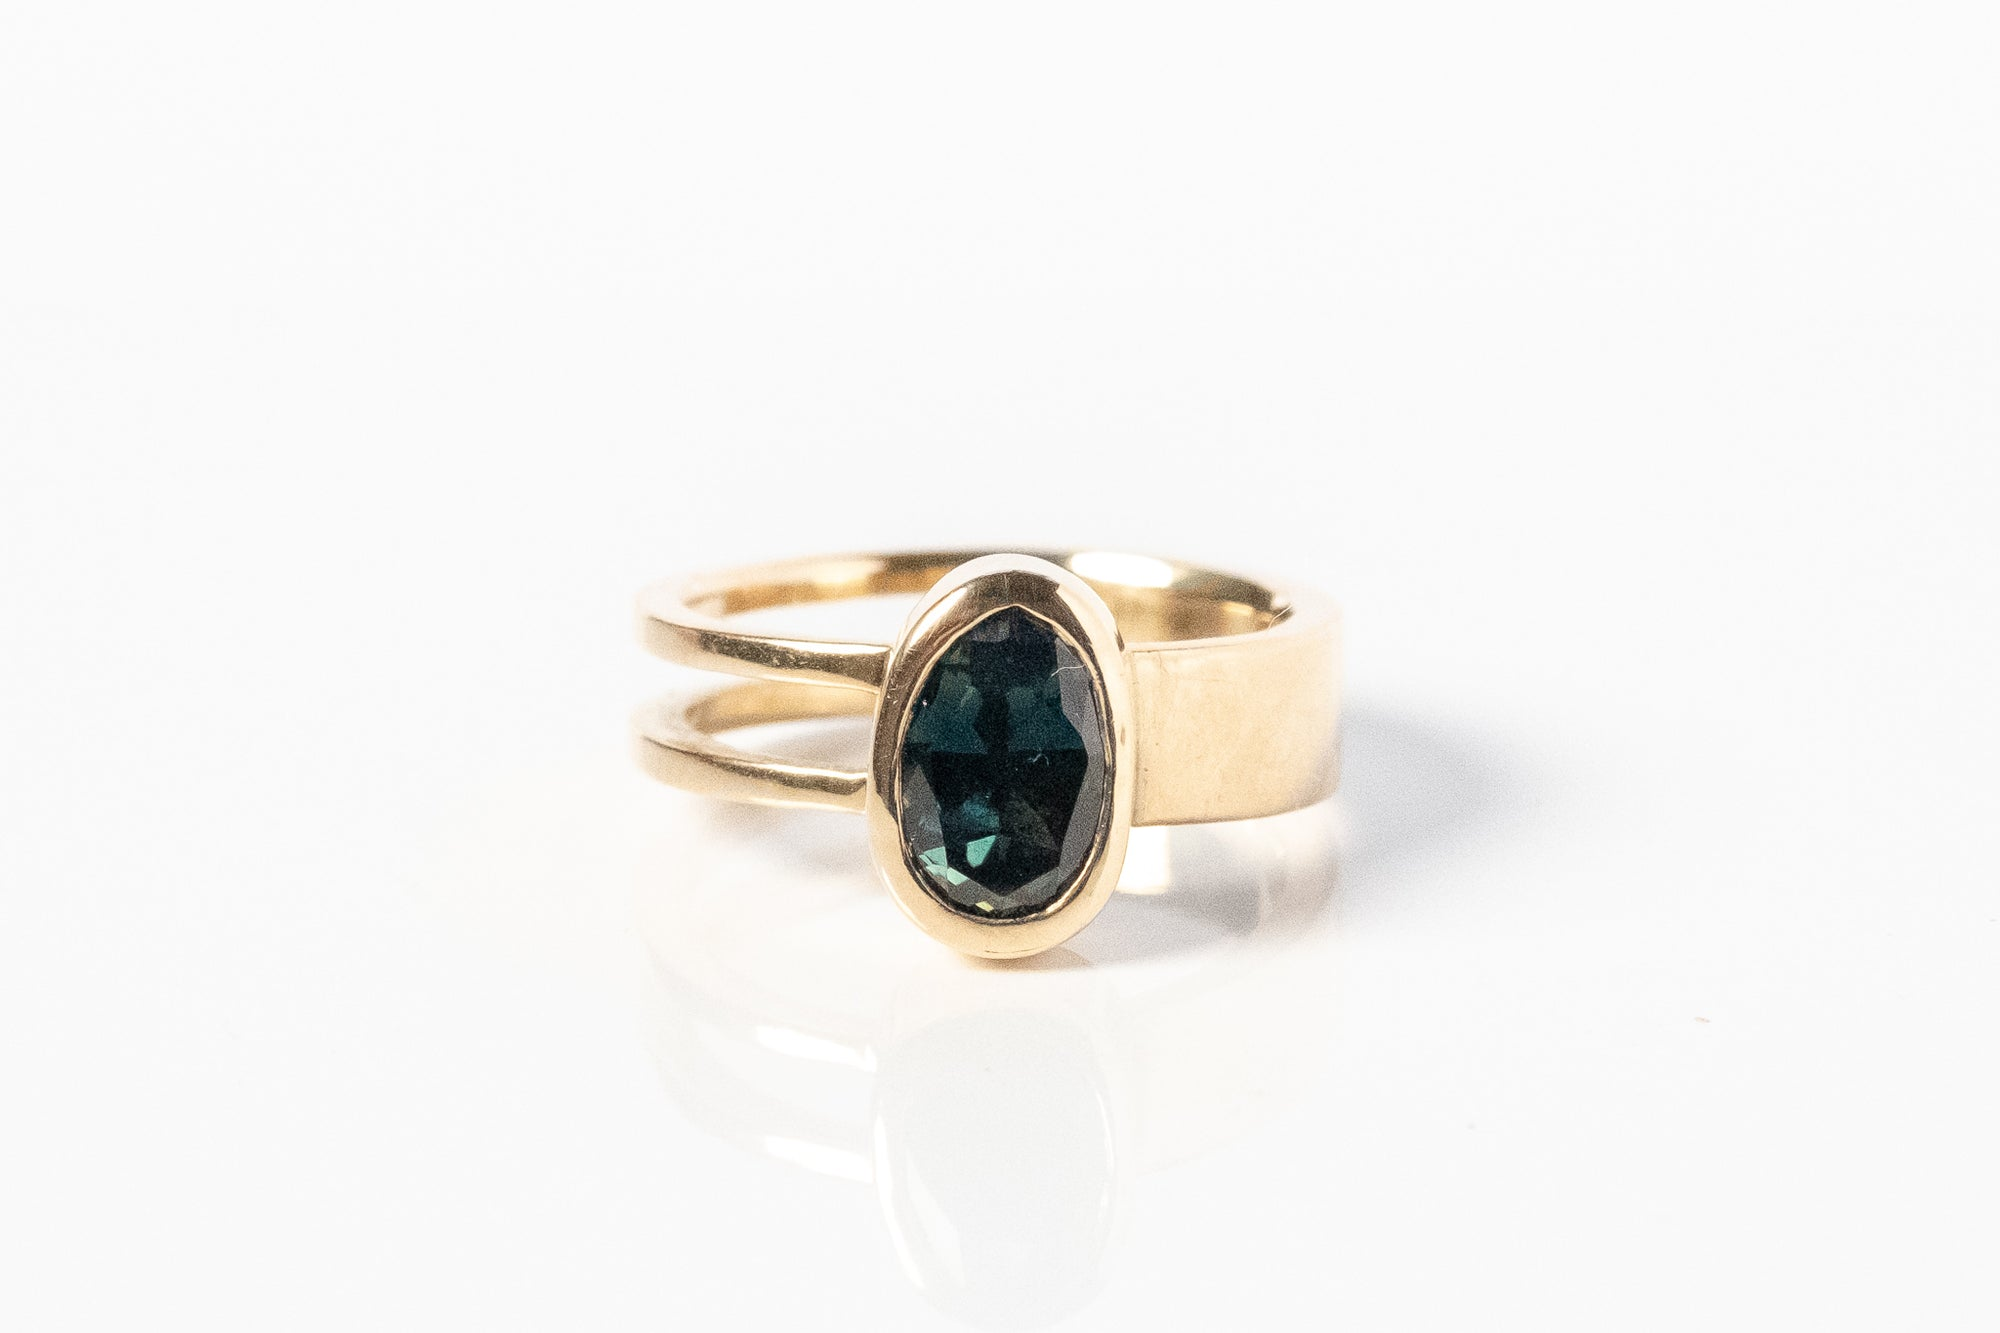 Gold ring with oval, bezel set, midnight blue sapphire